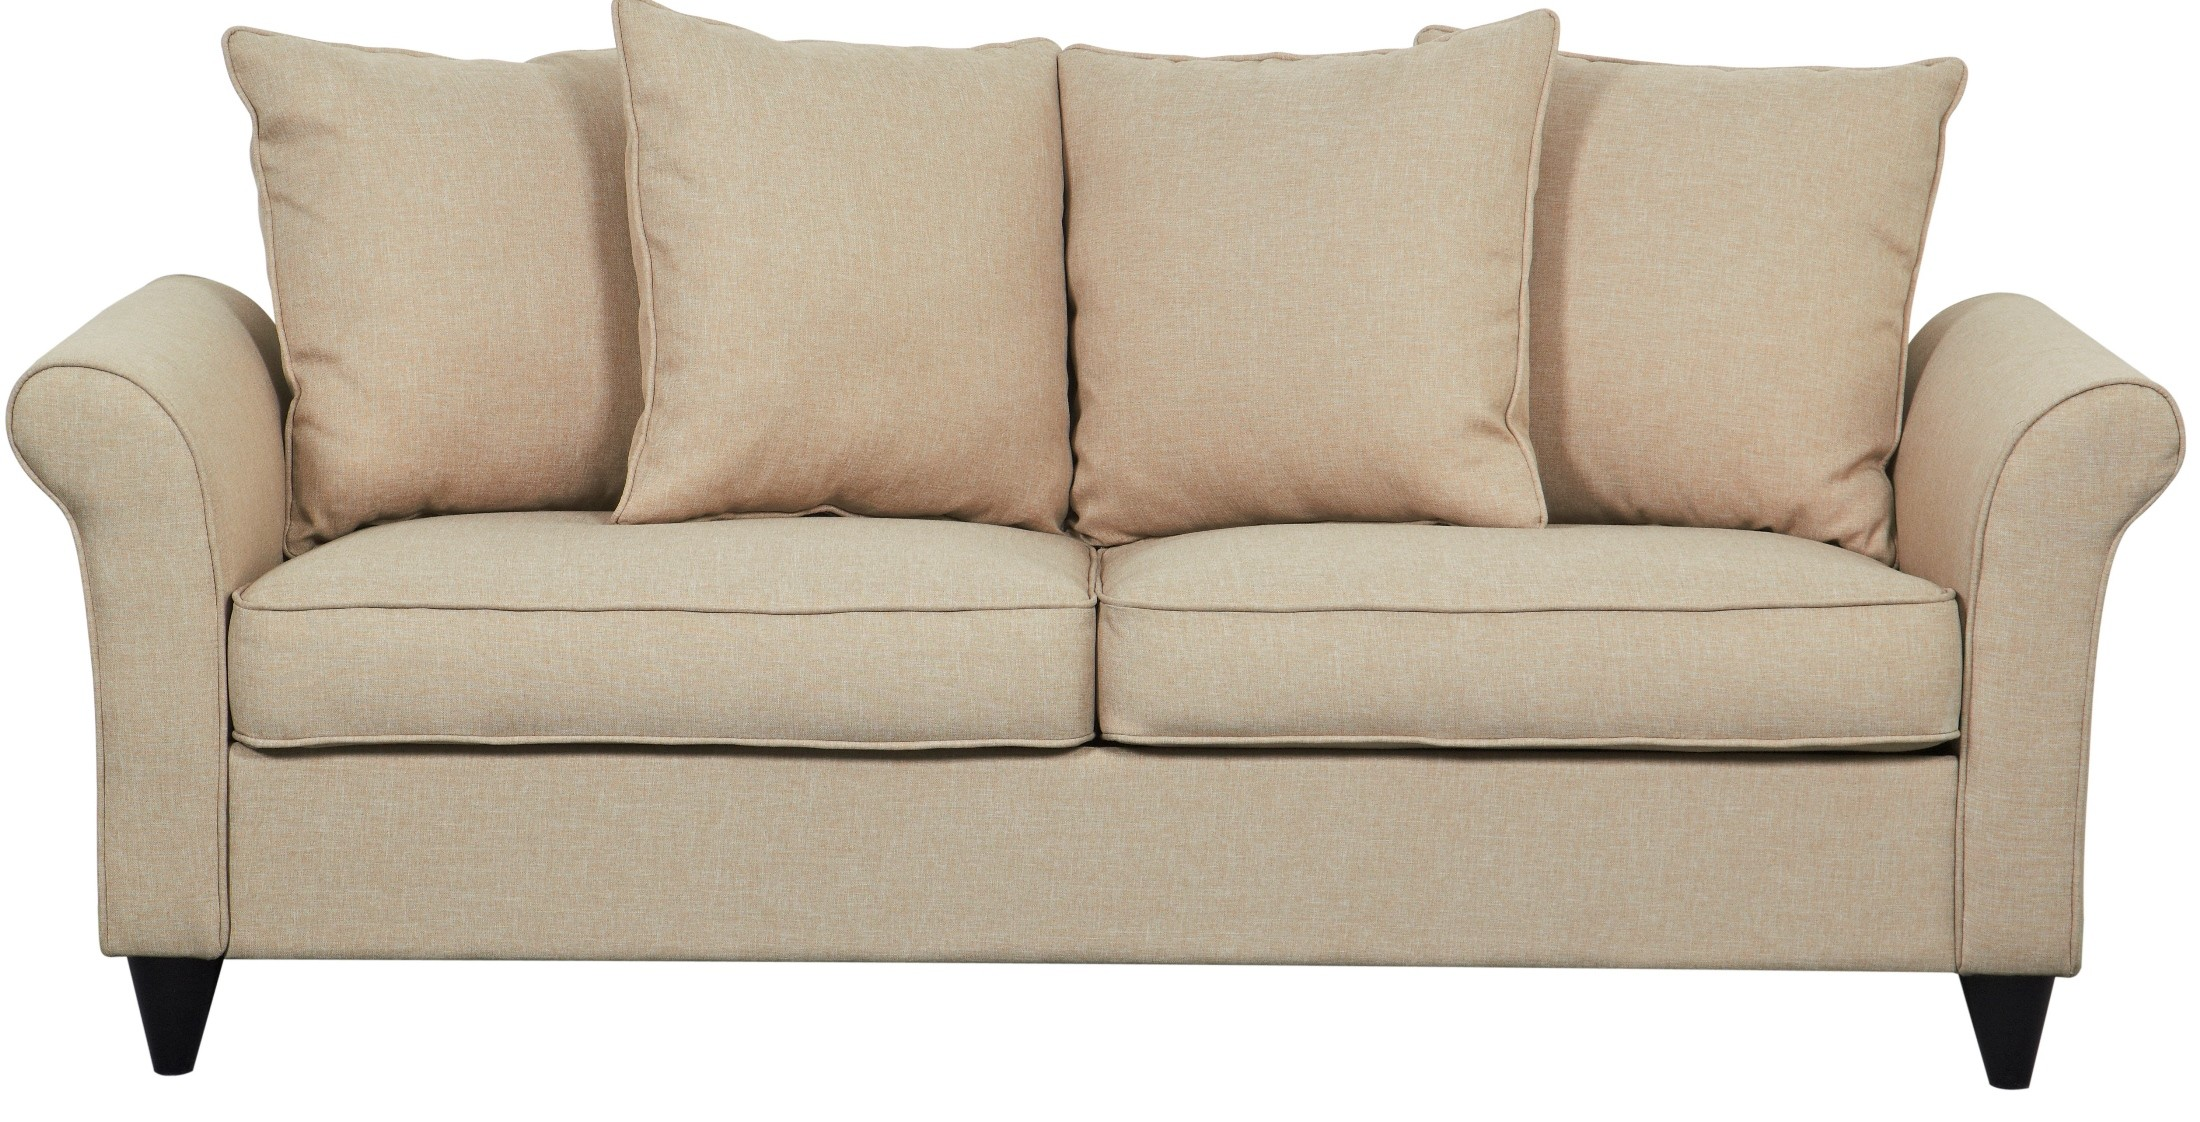 rollarm hayden beige sofa from pulaski  ds 2636 680 287 rolled arm sofa bed rolled arm sofa slipcover